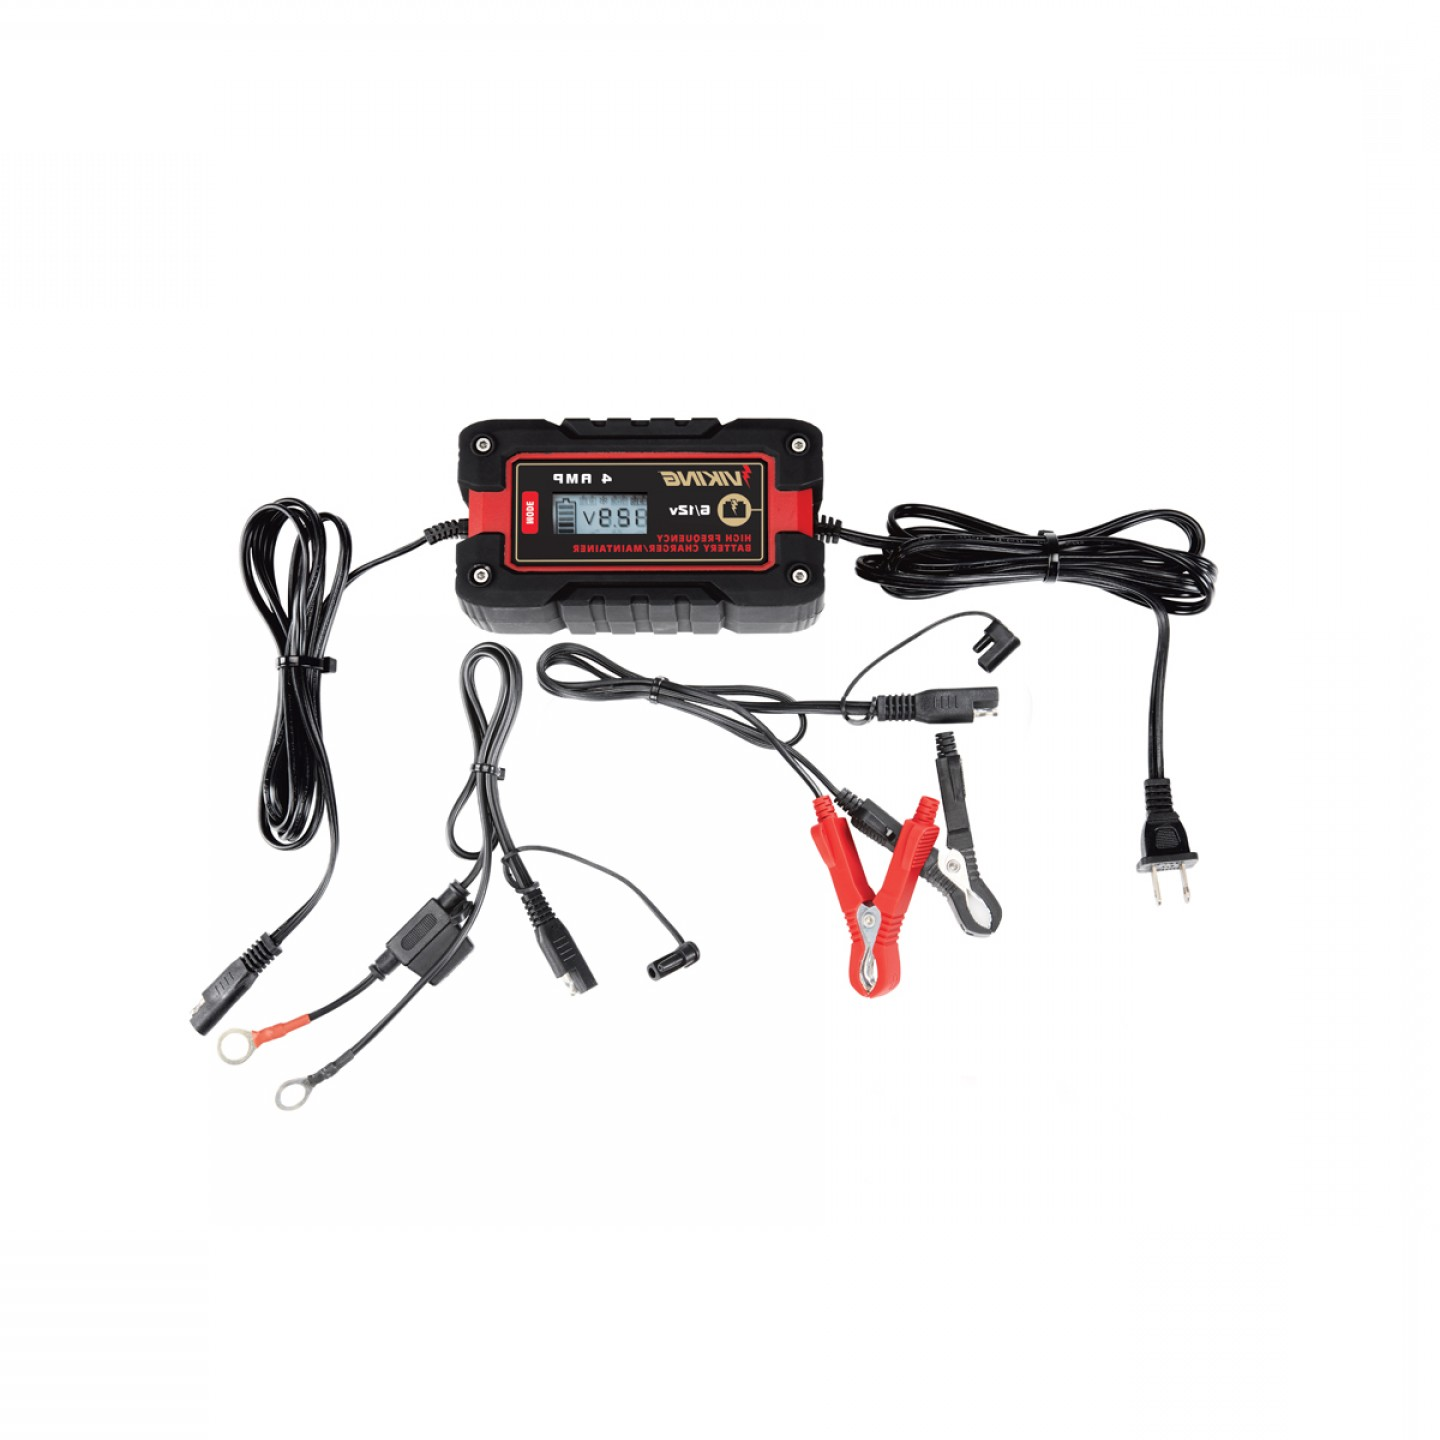 Vector Smart Battery Charger Manual: Amp Fully Automatic Microprocessor Controlled Battery Chargermaintainer